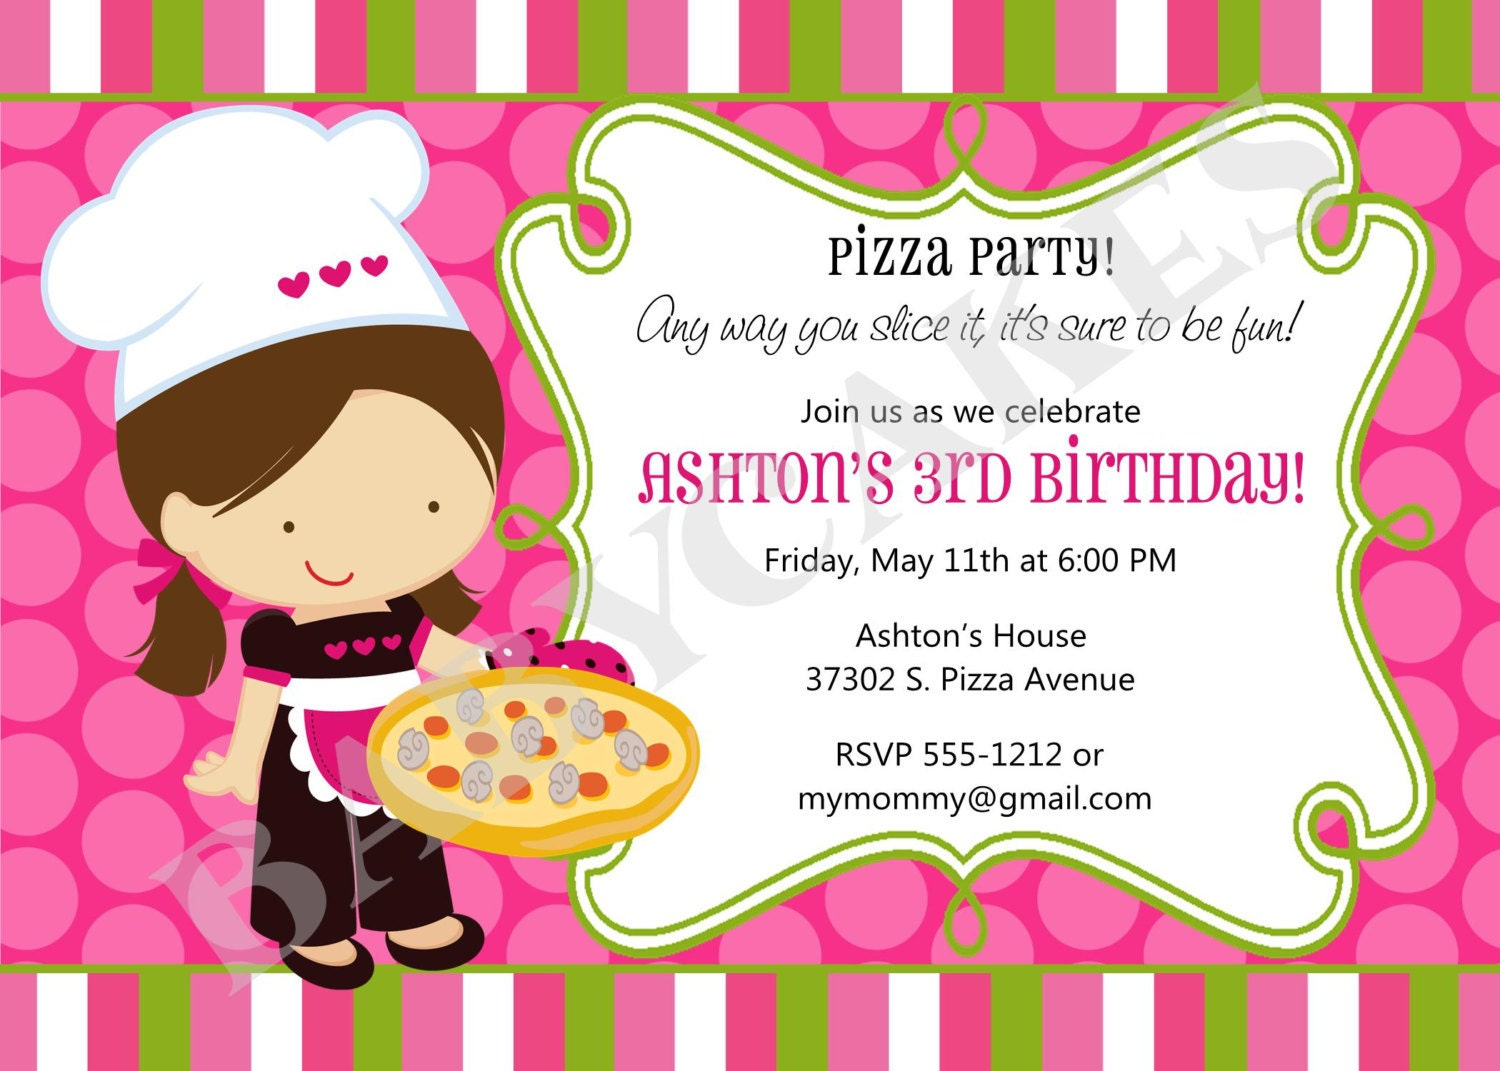 Pizza Party Invitation was very inspiring ideas you may choose for invitation ideas